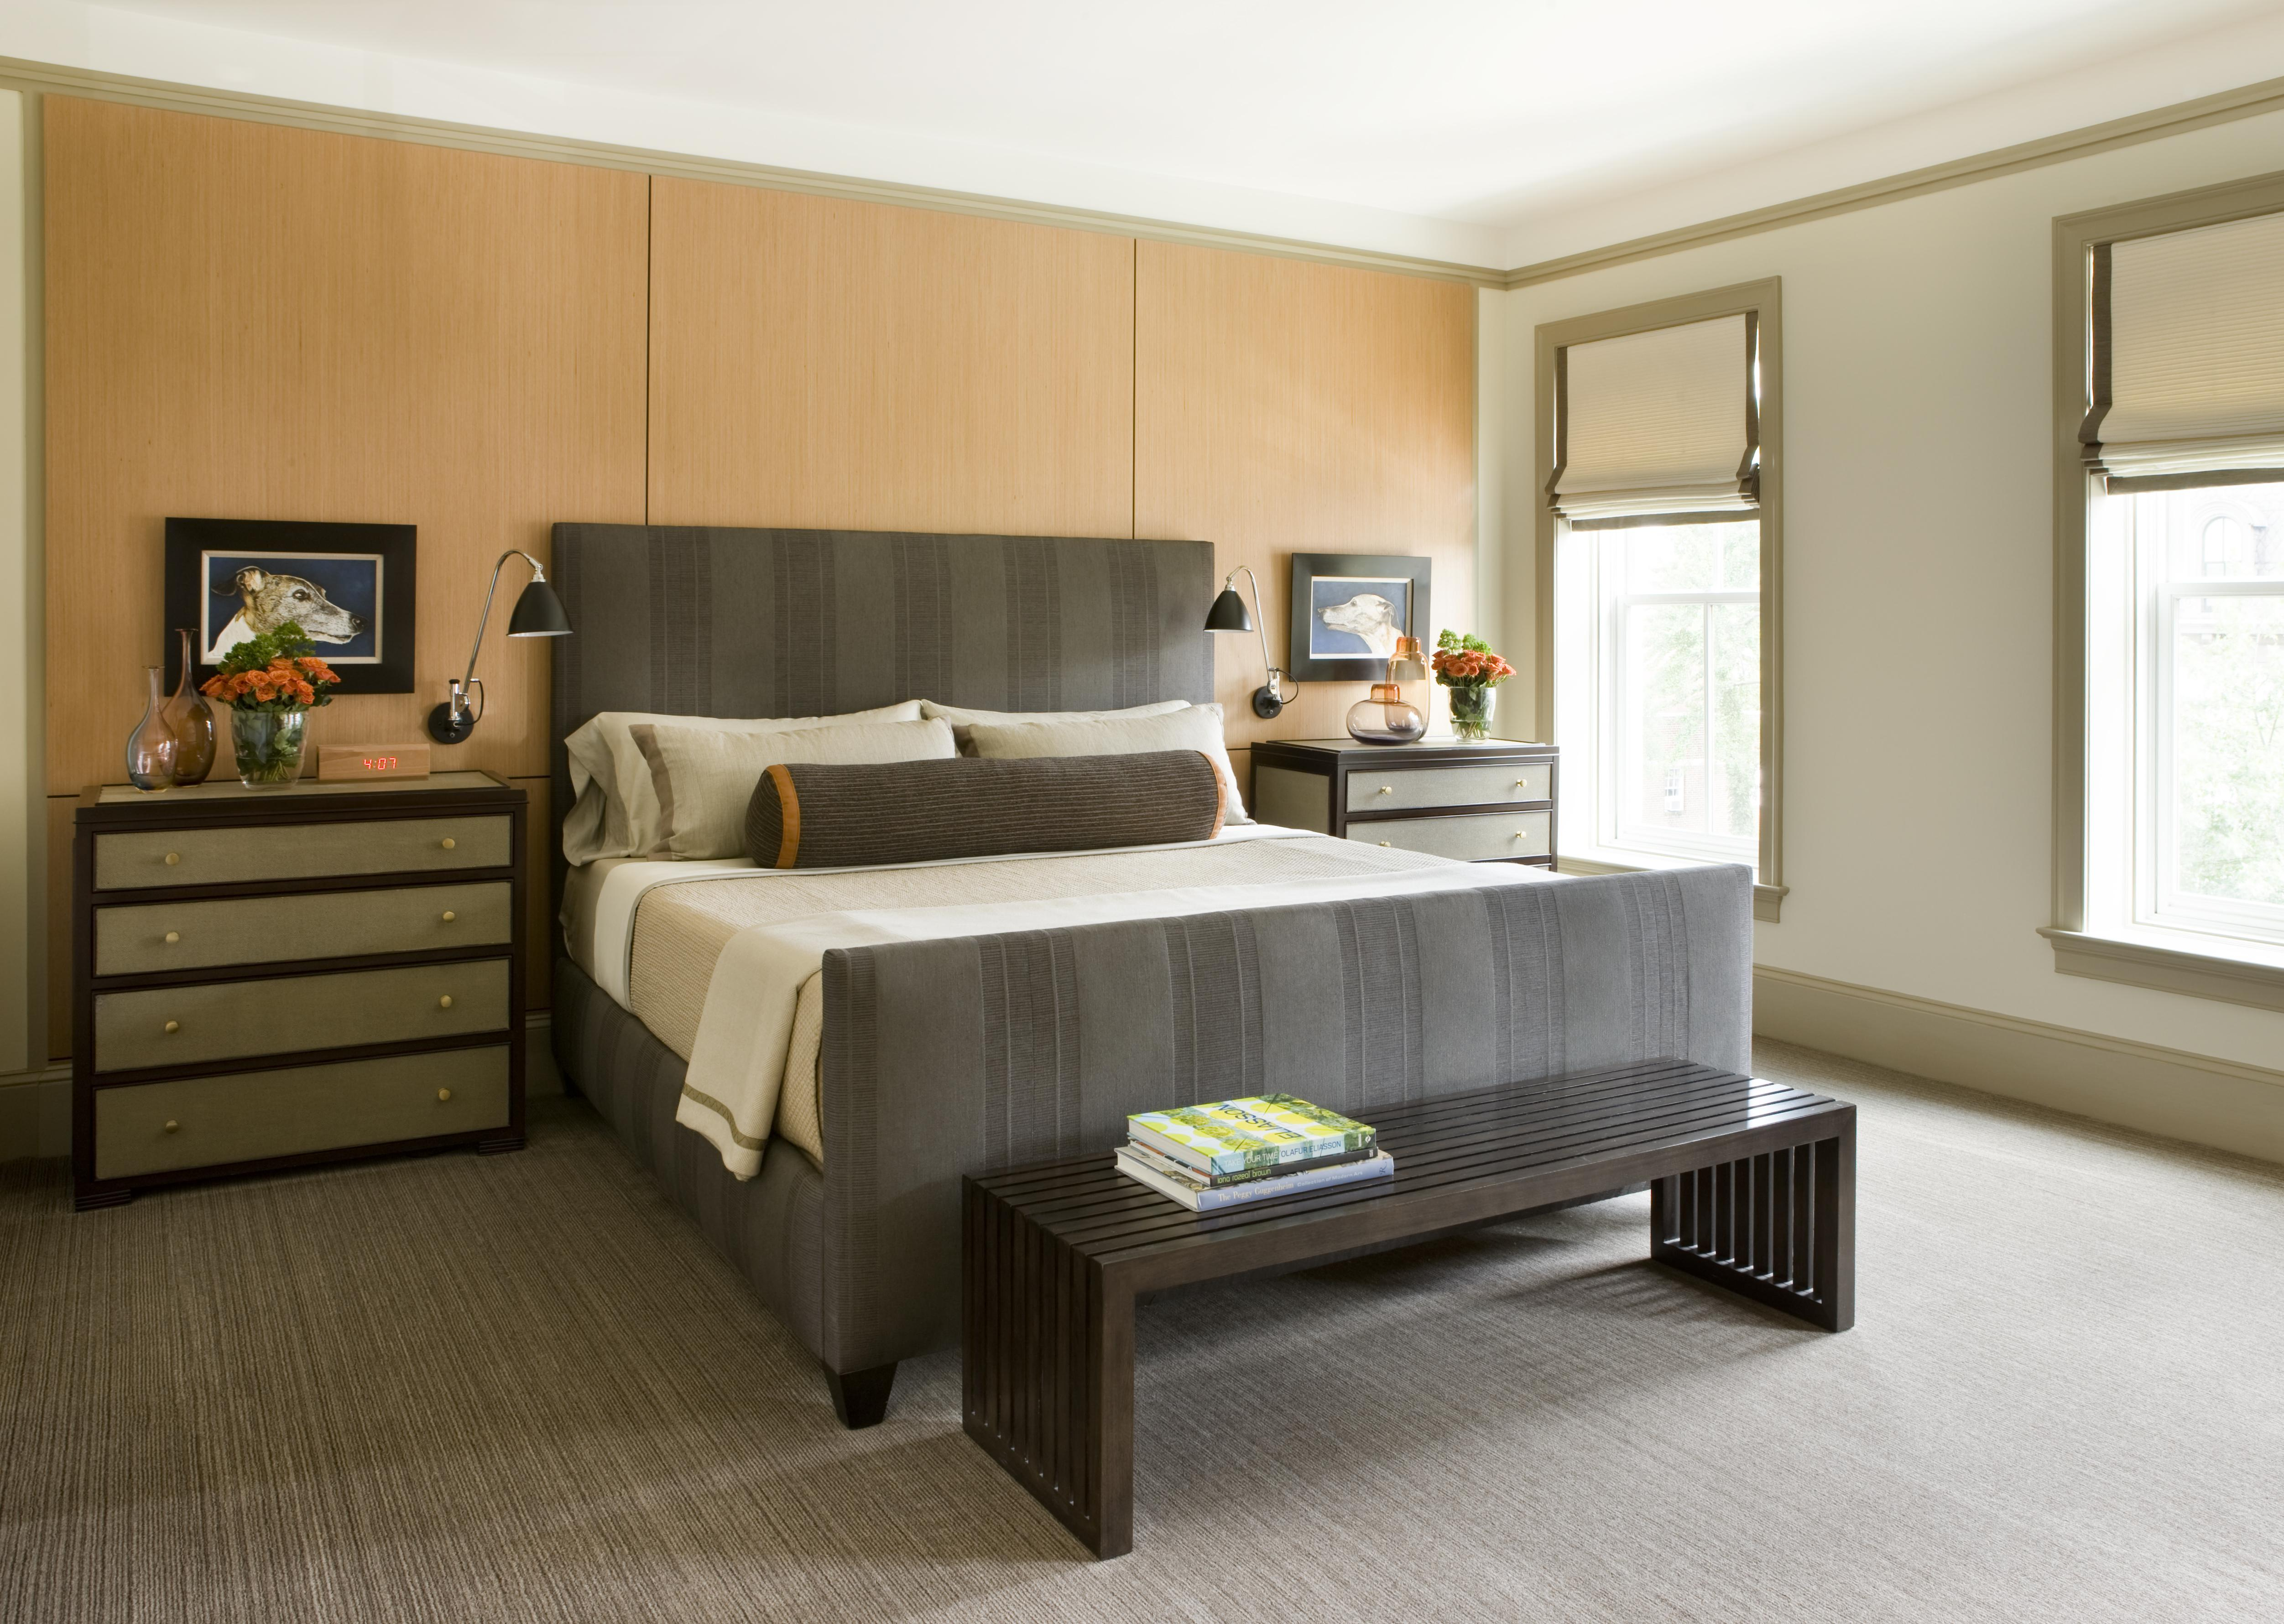 Delicieux Master Bedroom In A Logan Circle Rowhouse. J.D. Ireland Interior  Architecture U0026 Design